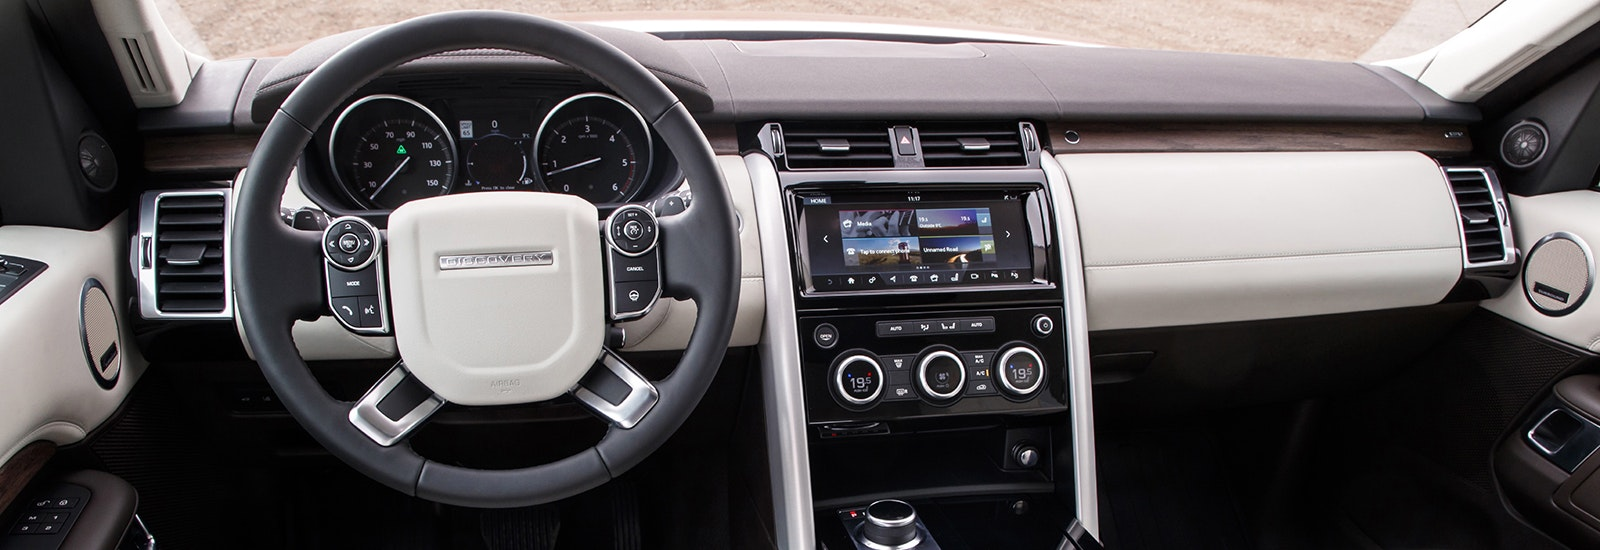 Land Rover Discovery SVX 4x4 SUV price specs release date ...